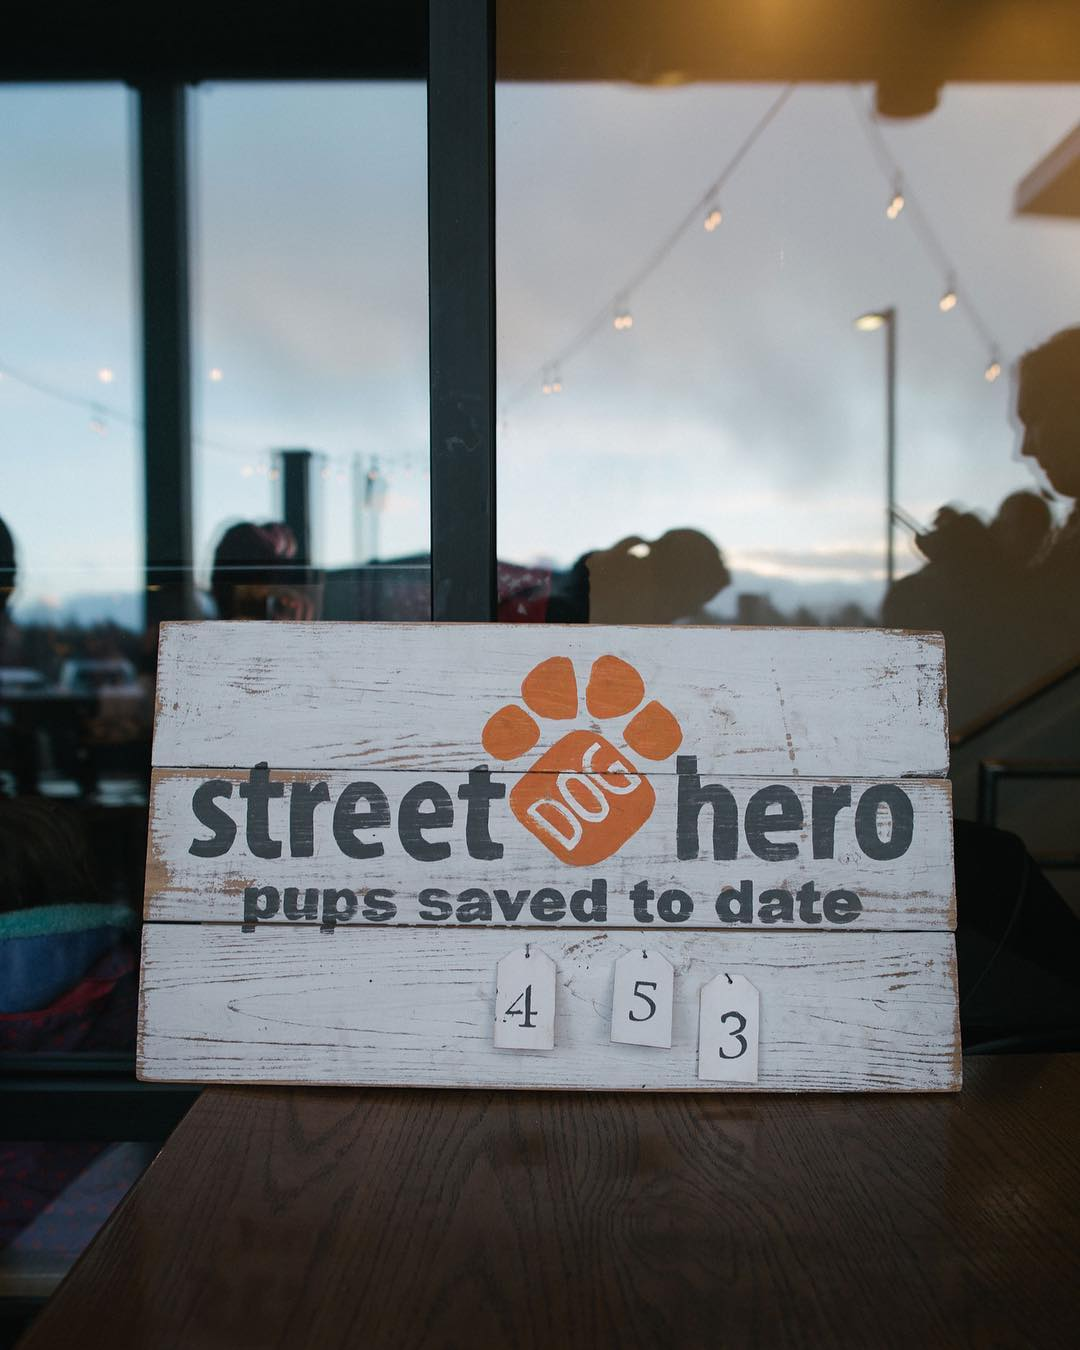 $5 Off for All Street dog hero rescues - I'm involved with SDH and have fostered over a dozen dogs. I understand some of the hurdles these dogs have been through and still have yet to over come. My gift to these dogs is $5 off any service for both dogs that have found their forever homes and ones currently waiting for their forever home to find them. I'm here to offer exercise, consistency, confidence building and love!Visit Street Dog Hero